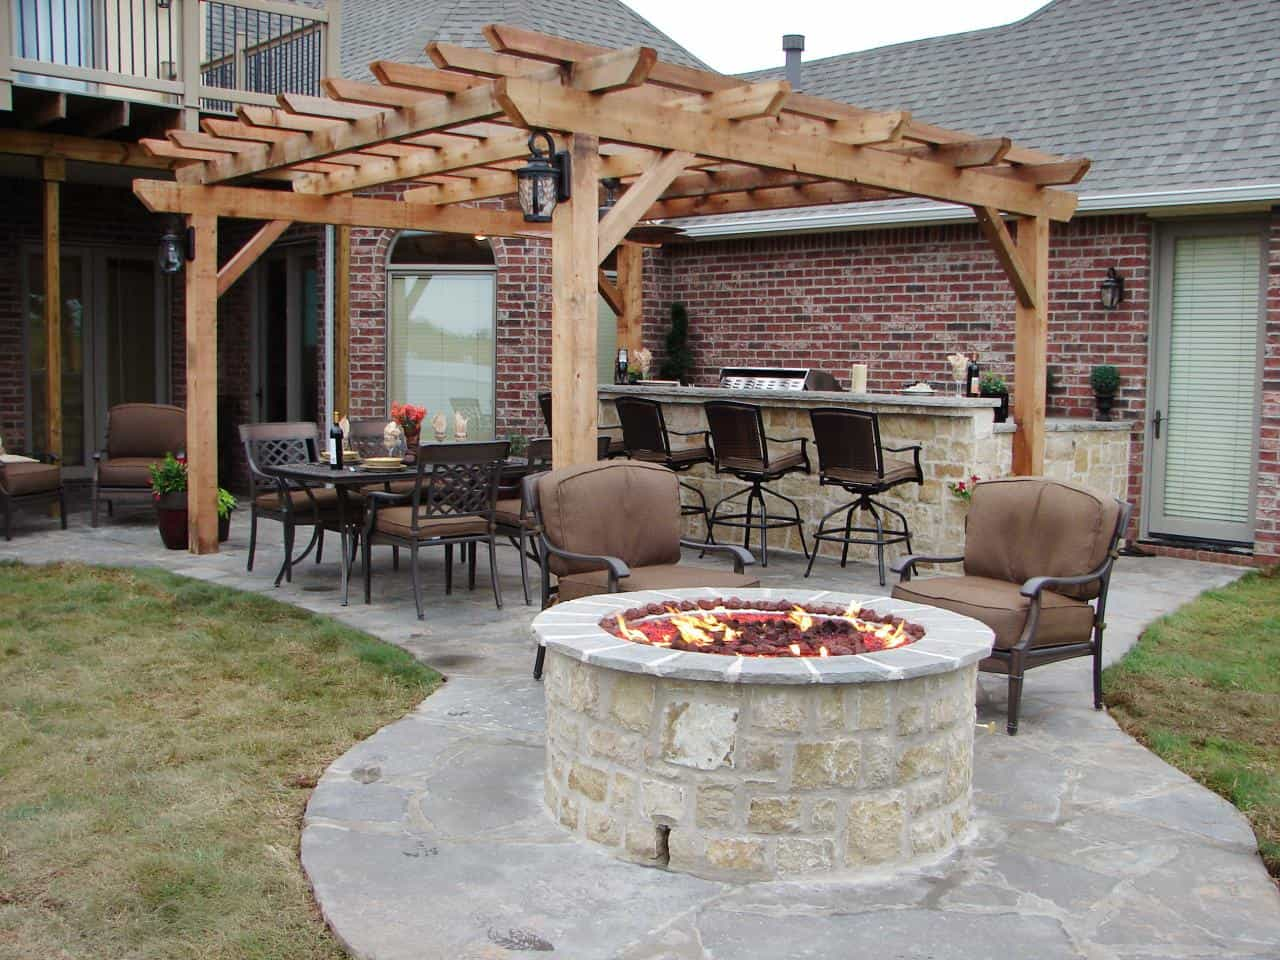 15 Outdoor Kitchen Designs That You Can Help DIY on Small Outdoor Fireplace Ideas id=58729